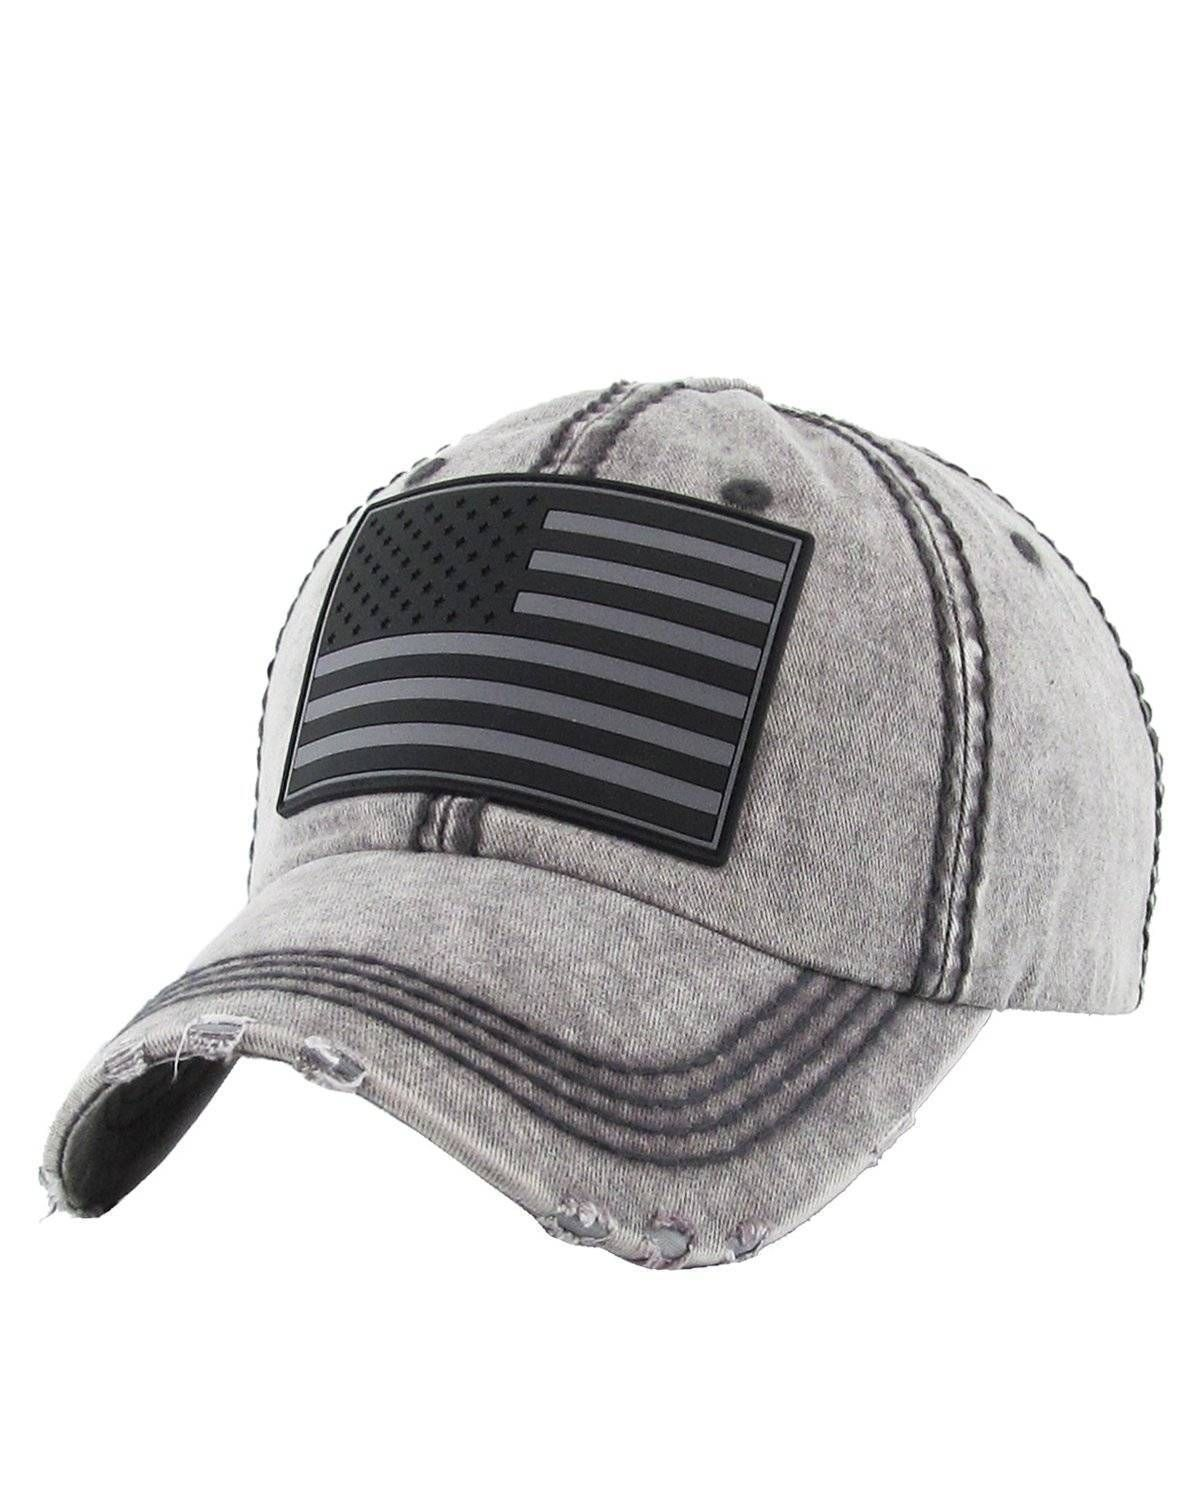 American Flag Tactical Operator Vintage Baseball Cap American Flag Hat Vintage Style Hat Mens Hats Fashion